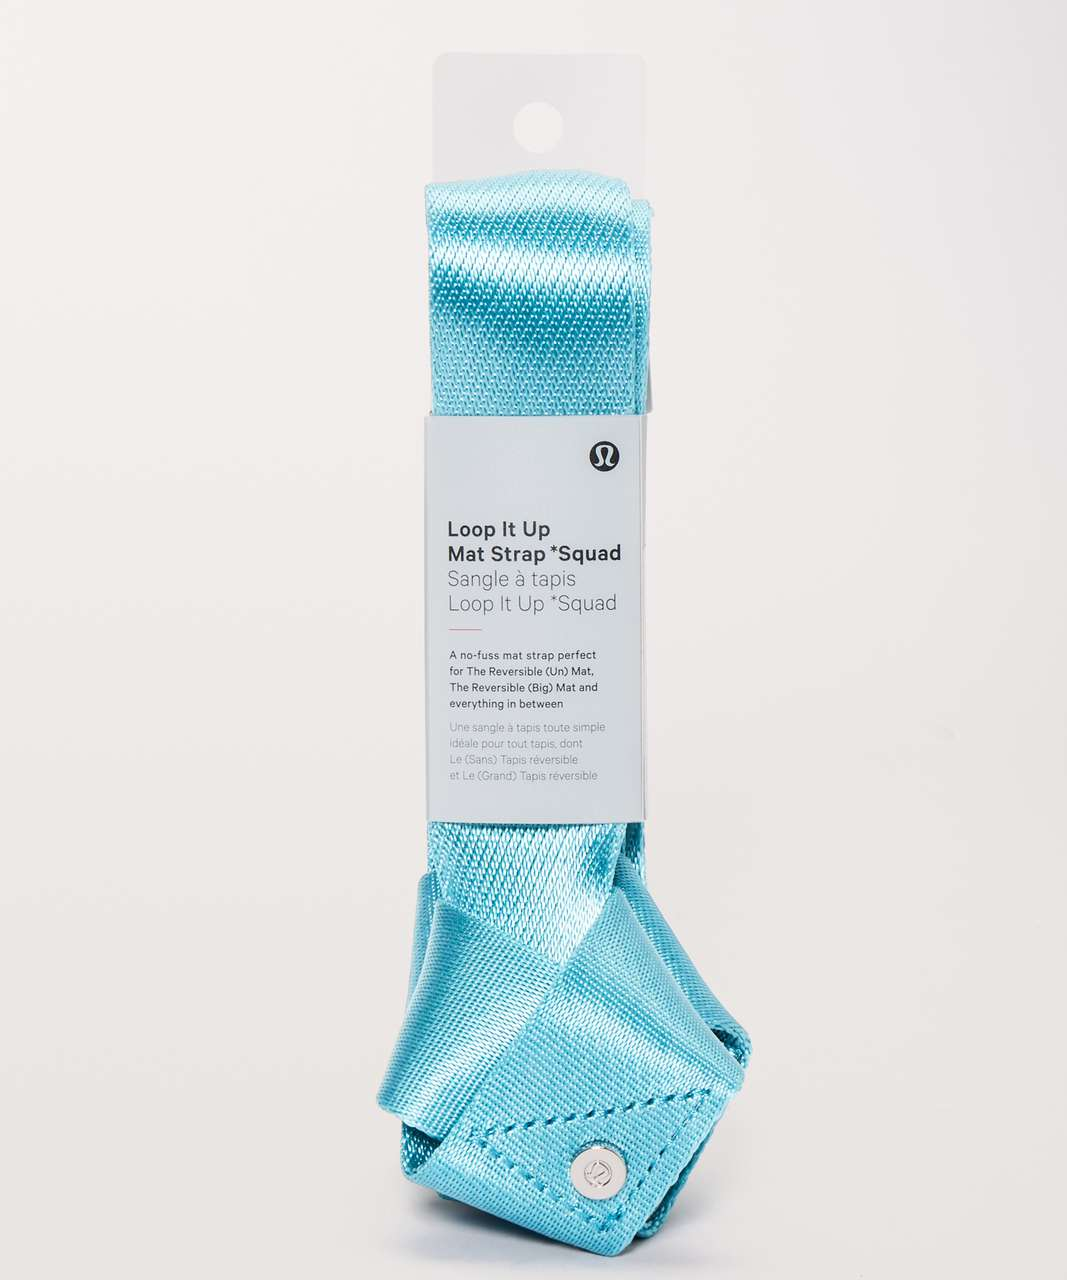 Lululemon Loop It Up Mat Strap *Squad - Eton Blue / Brilliant Blue